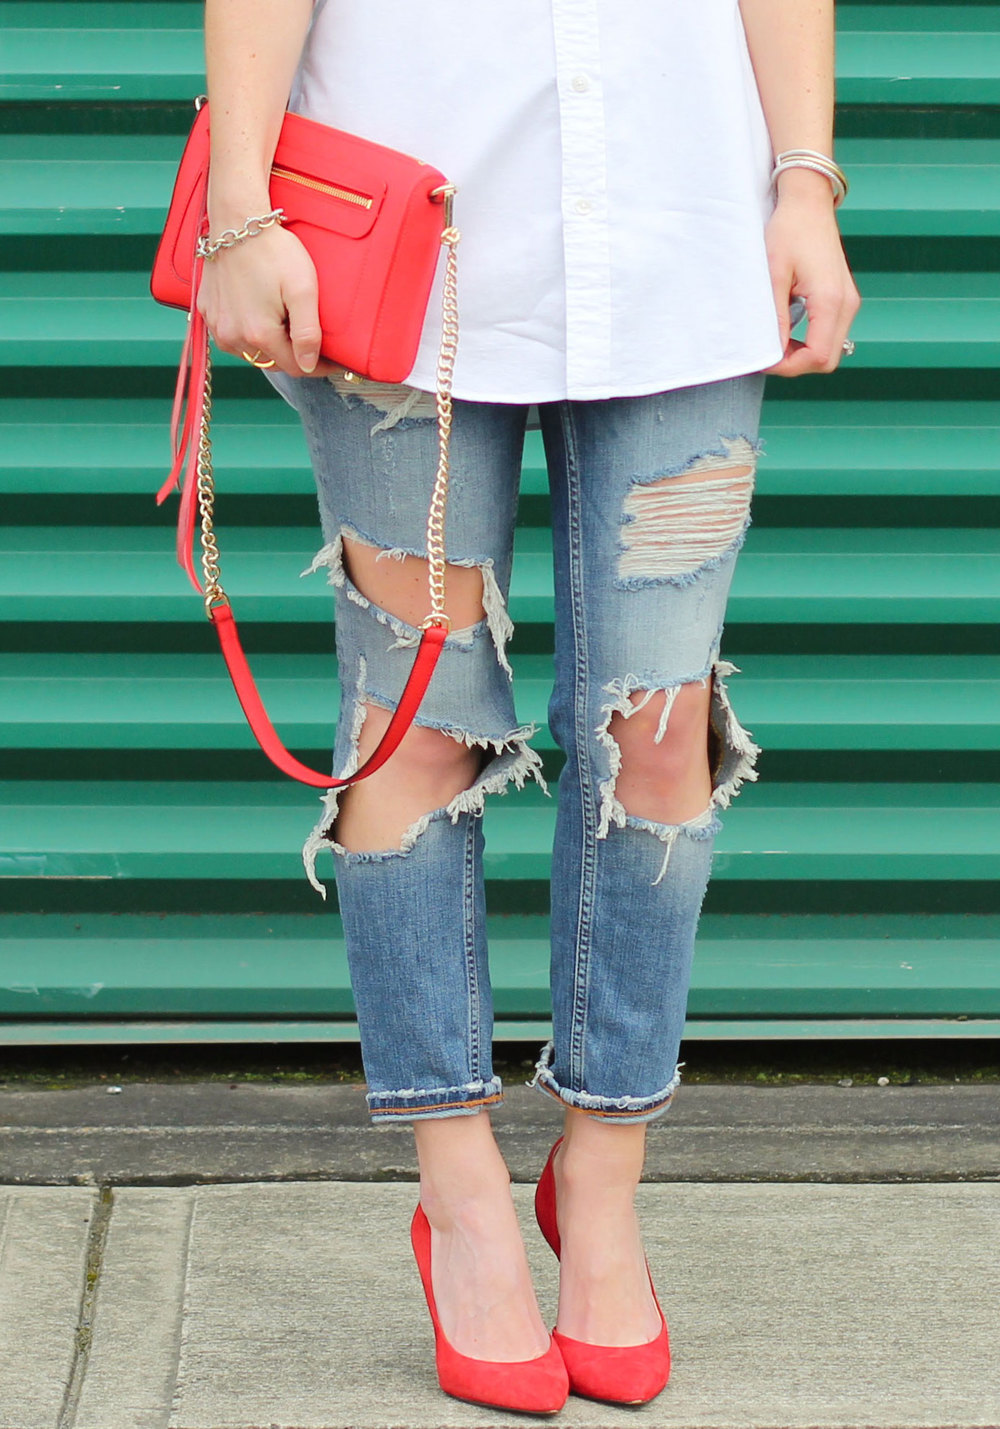 Zara Destroyed Girlfriend Jeans, Red Pumps, Red Rebecca Minkoff Avery Crossbody Handbag, White Boyfriend Shirt